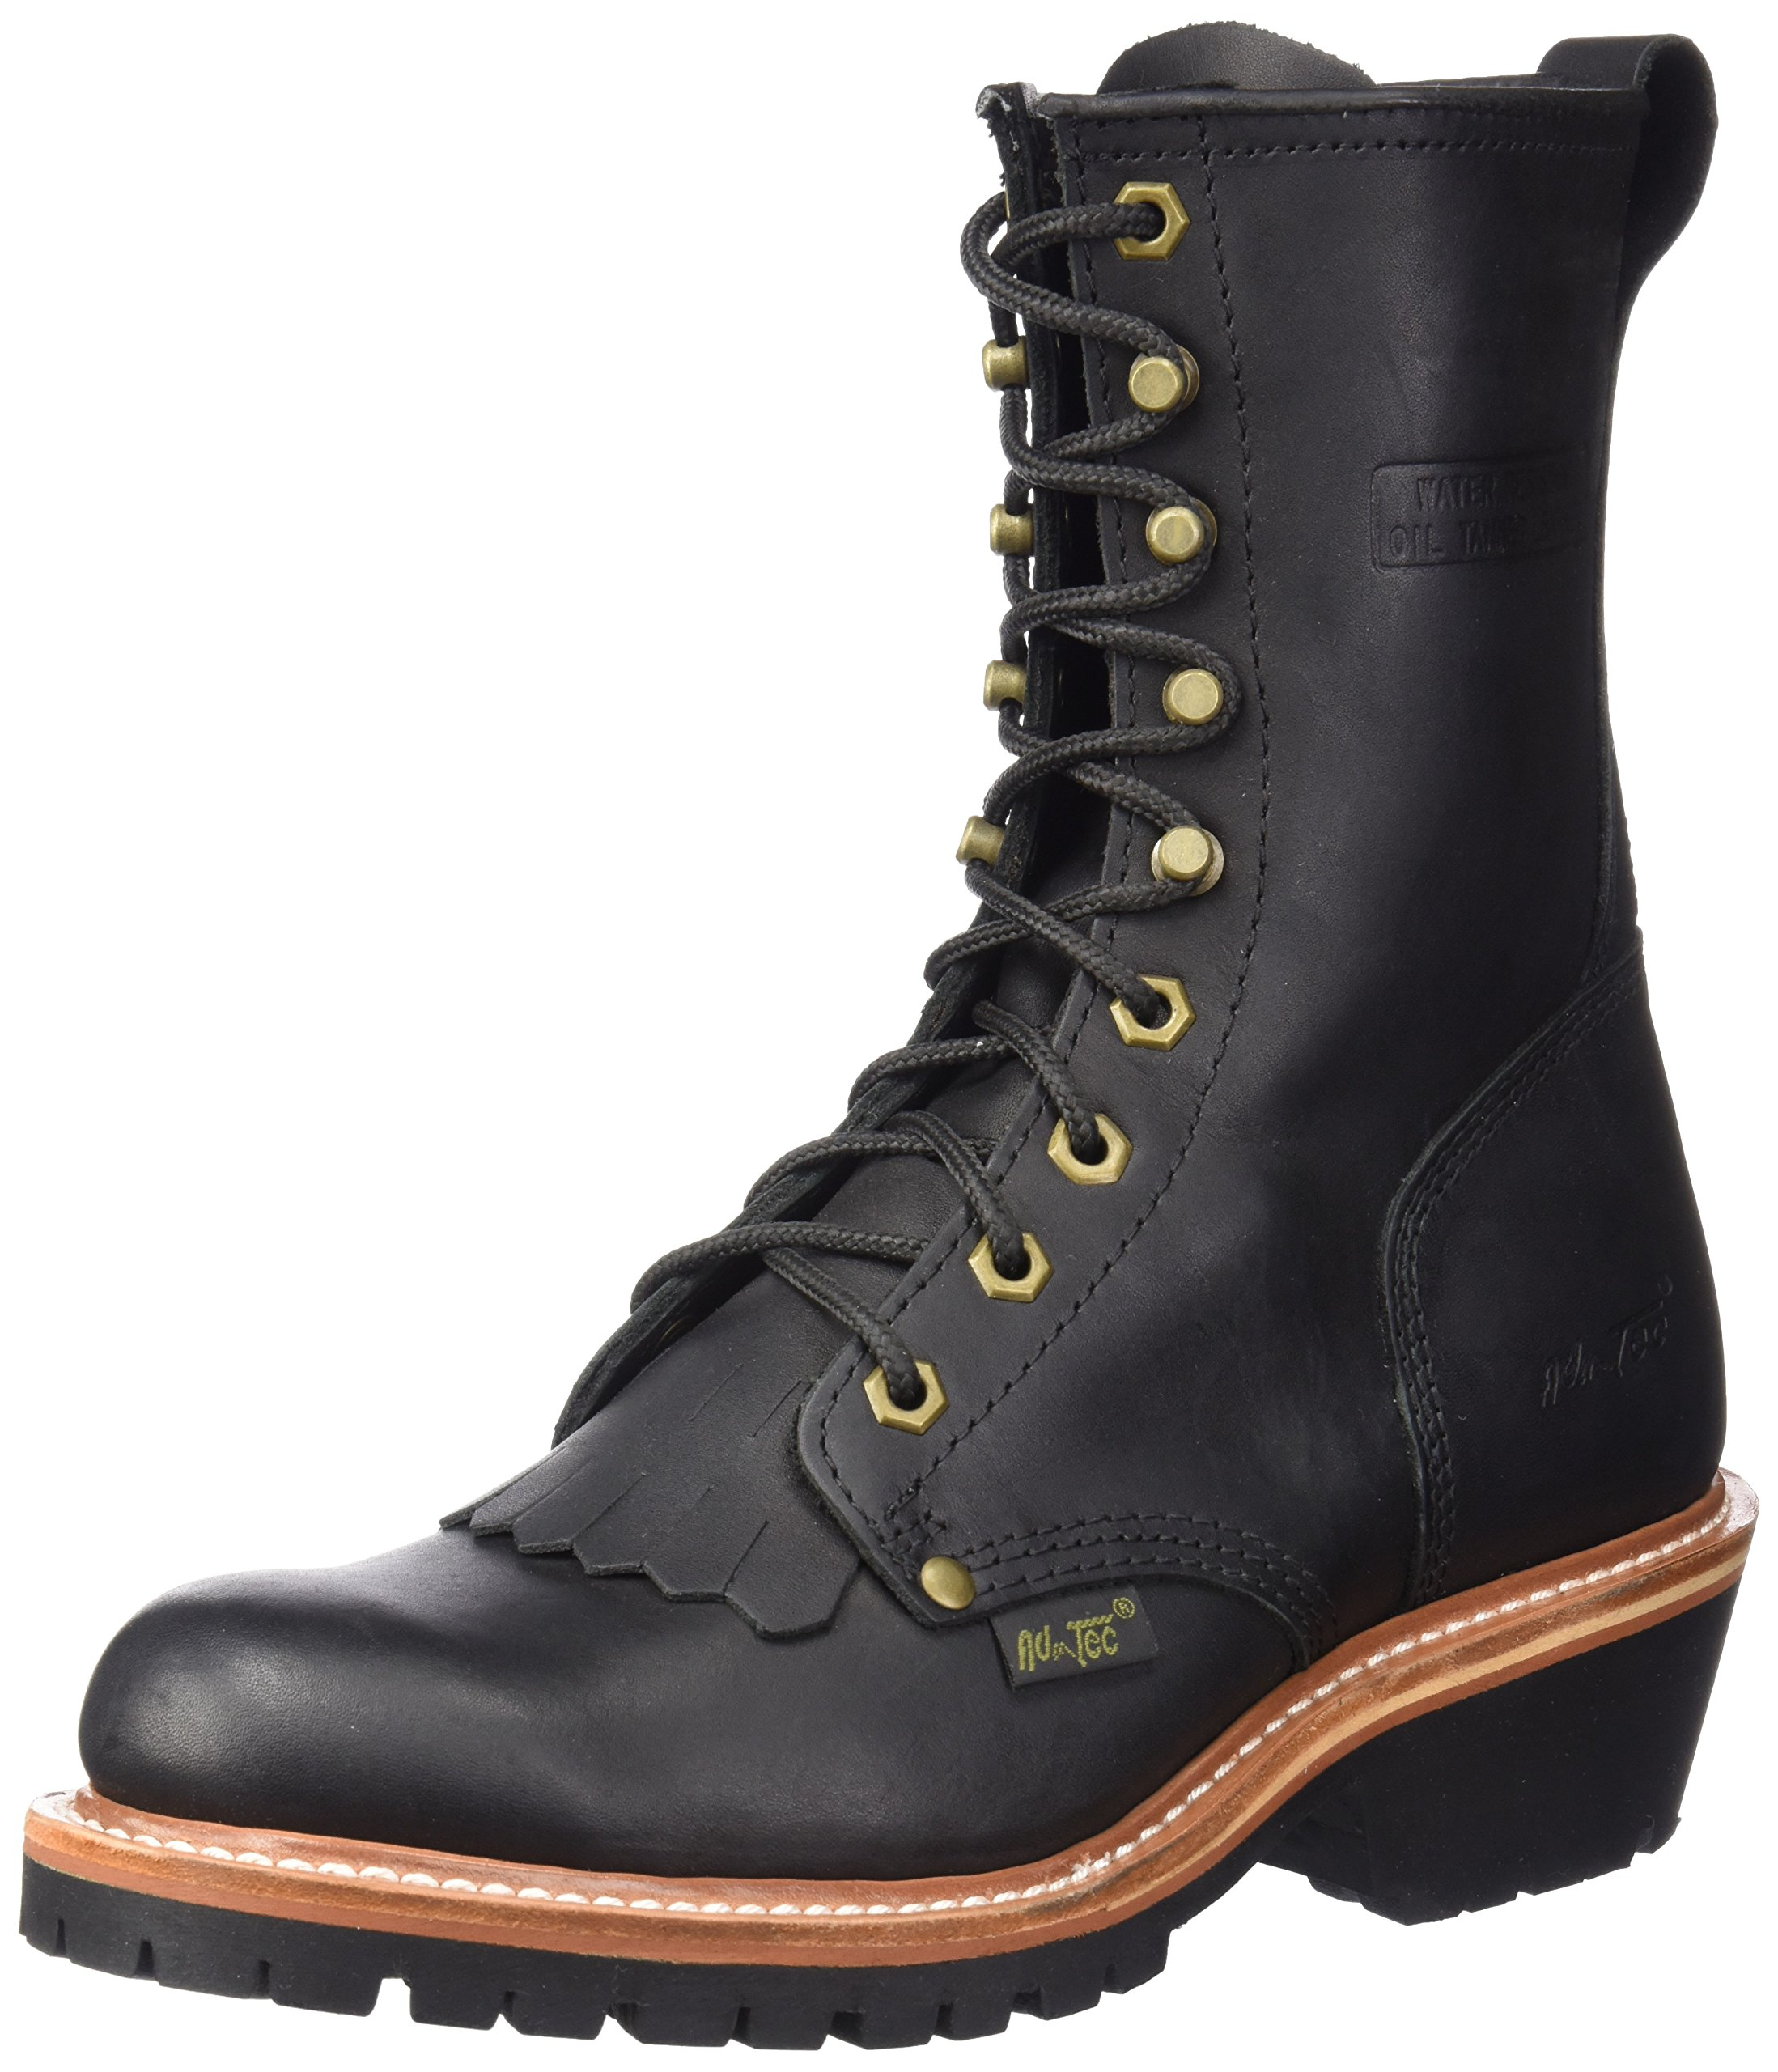 AdTec Men's 1964 10'' Fireman Logger Black Work Boot, 9.5 W US by AdTec